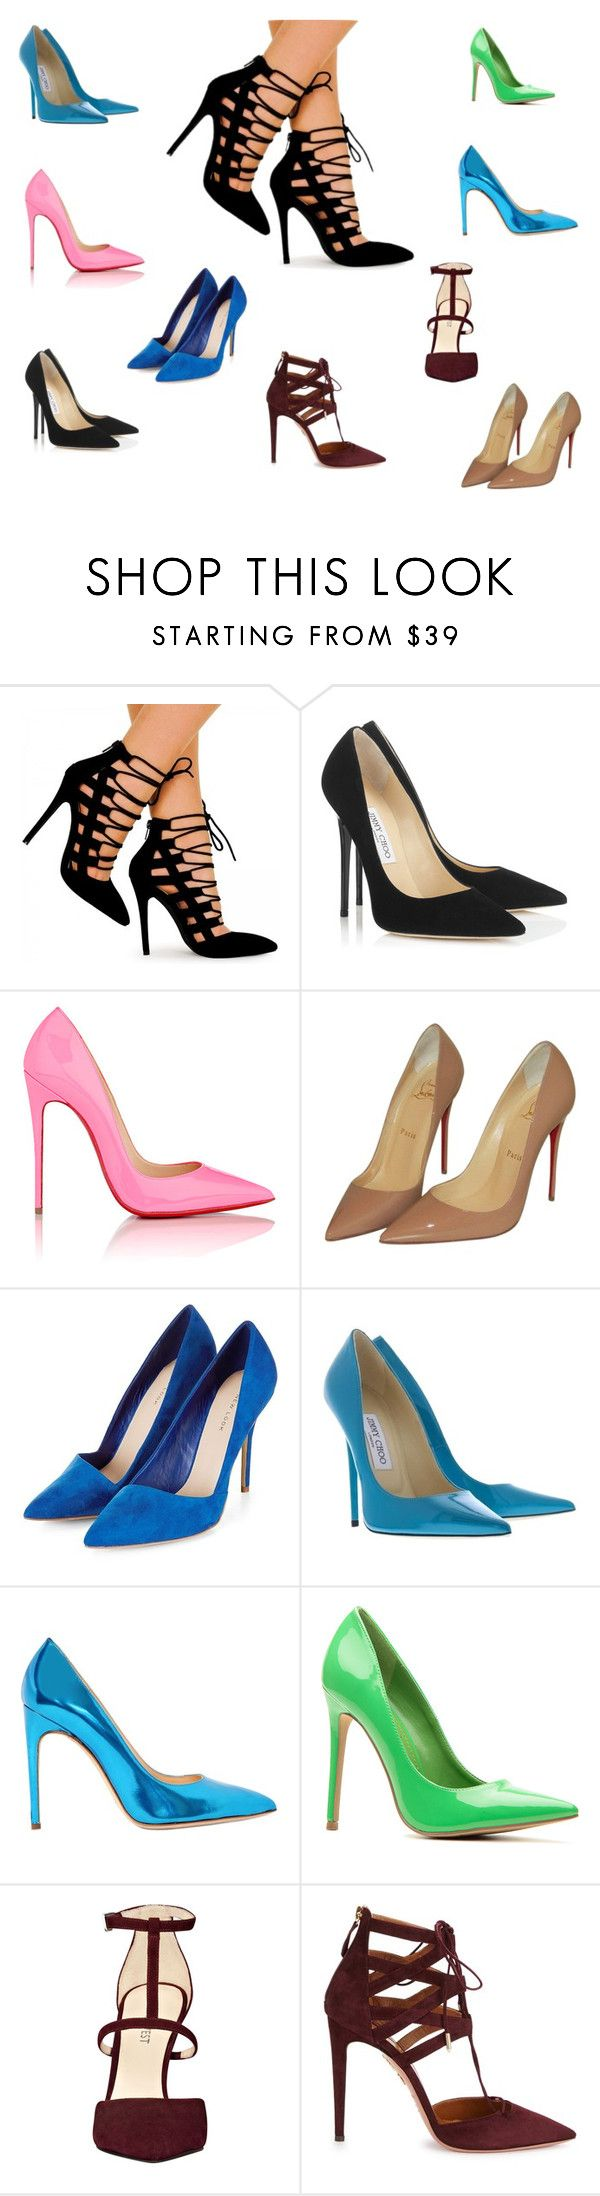 """Sempre no salto !"" by marciabackermendes ❤ liked on Polyvore featuring Jimmy Choo, Christian Louboutin, Nine West and Aquazzura"